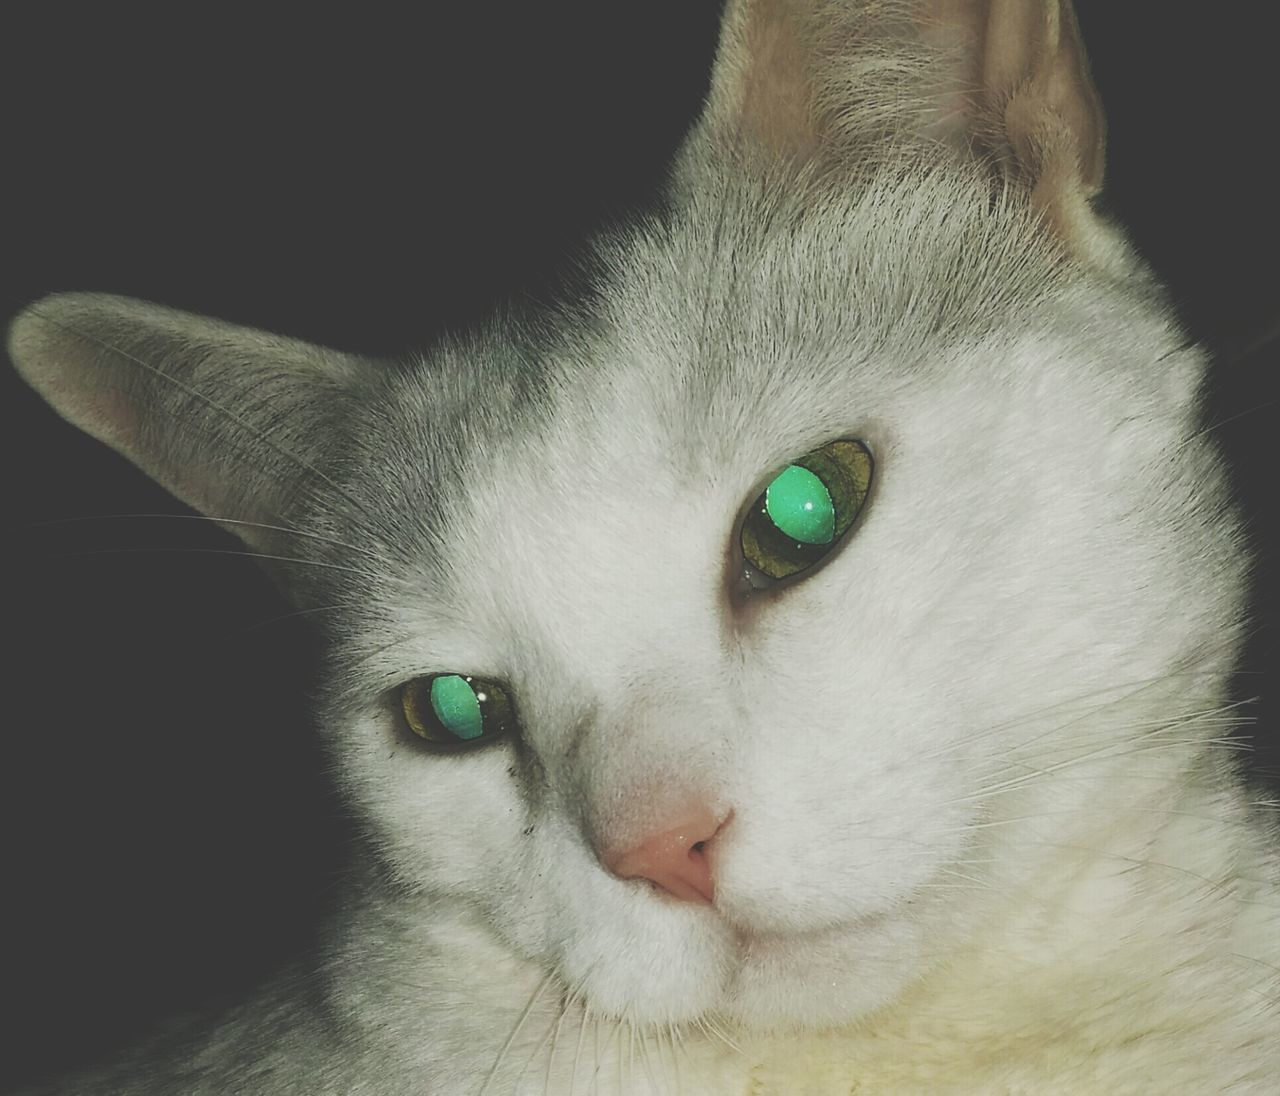 Mycatisthebest Therapypet Lovedefined Angel In Disguise Mypal EyeEm Pets Popular Photos Cat Lovers Whitecat